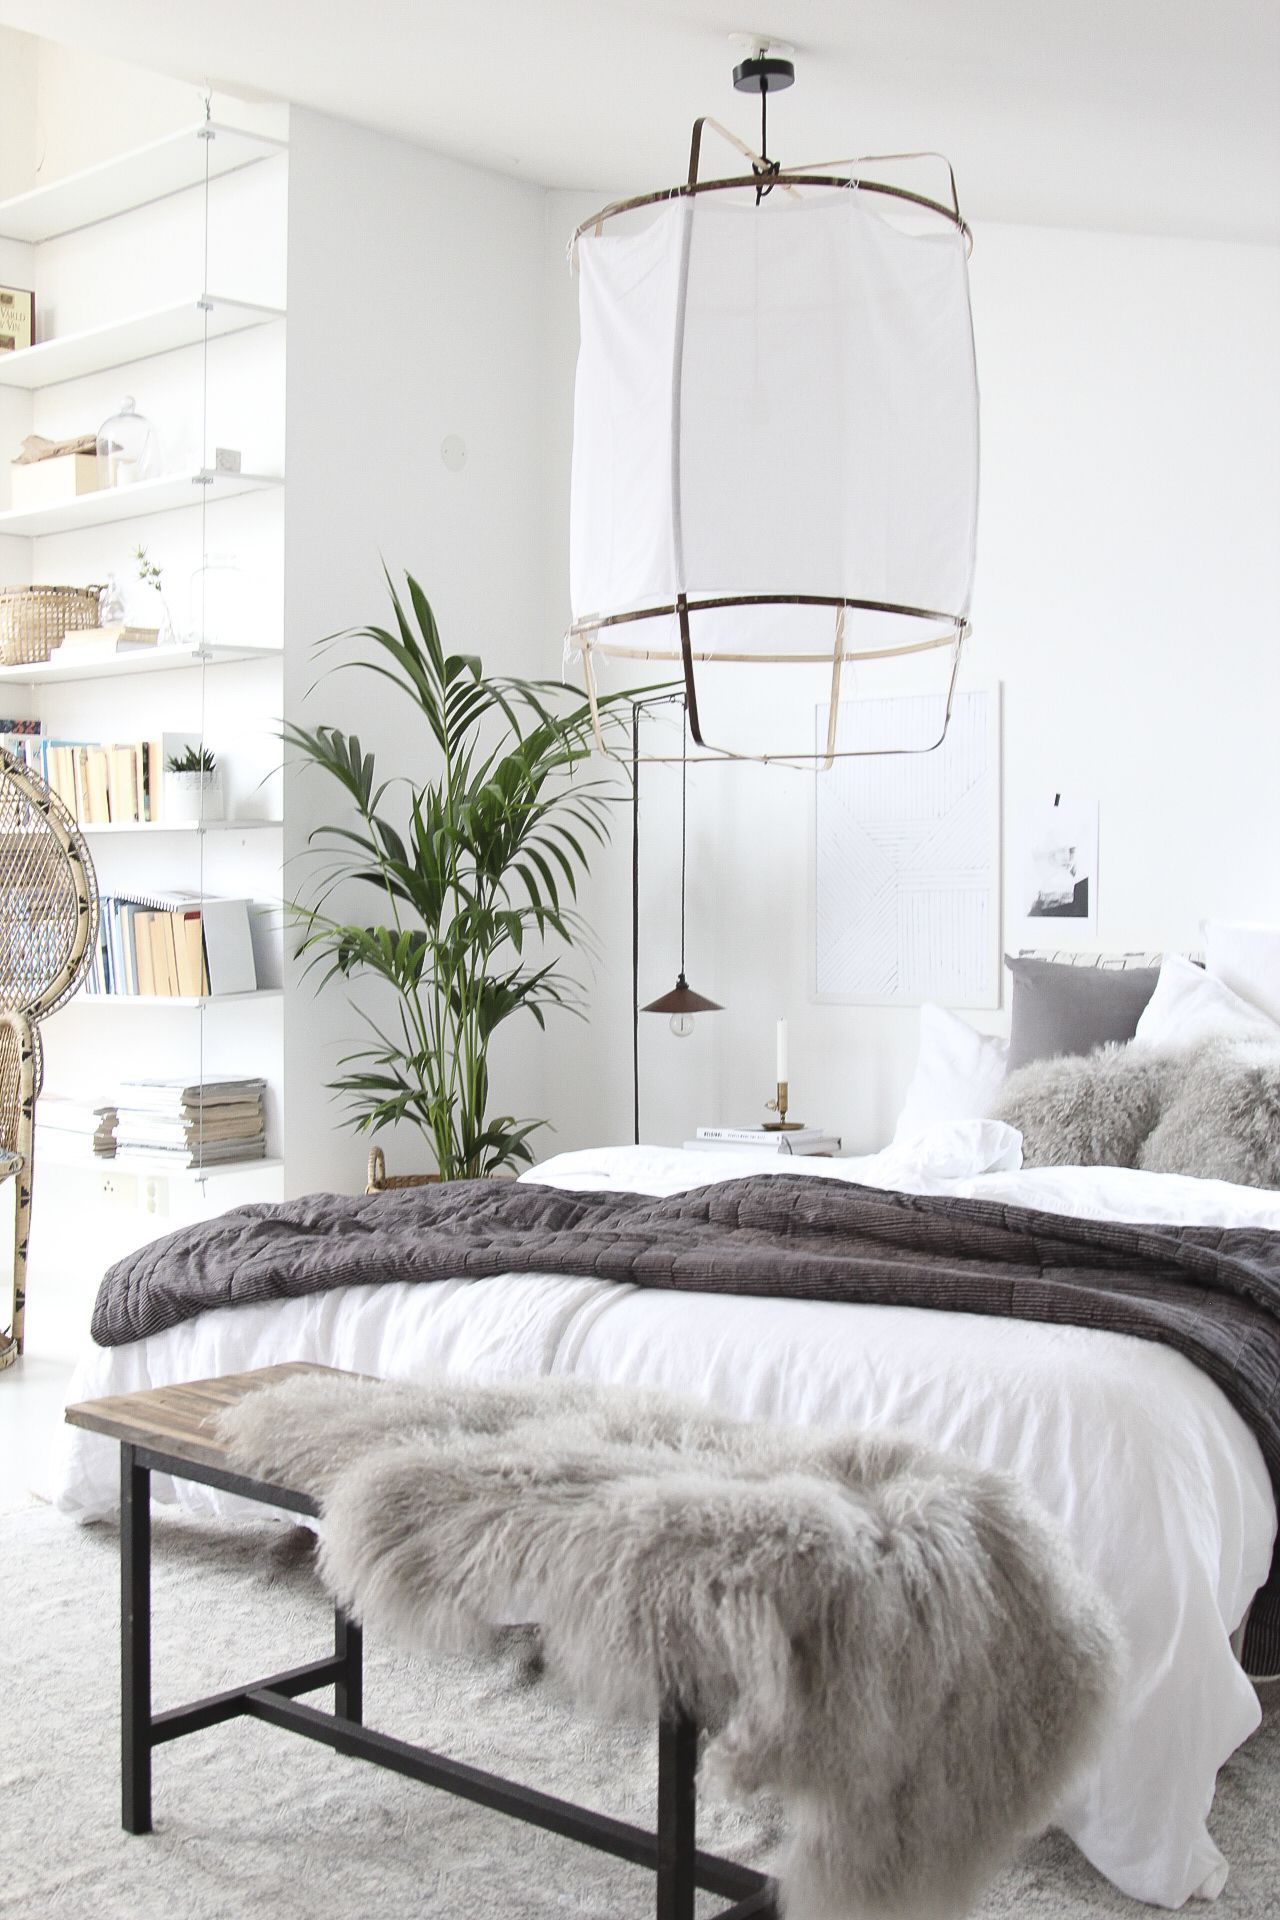 12 Scandinavian Design Trends You Ll Be Tempted To Try Scandinavian Bedroom Decor Scandinavian Design Bedroom Modern Scandinavian Bedroom Design